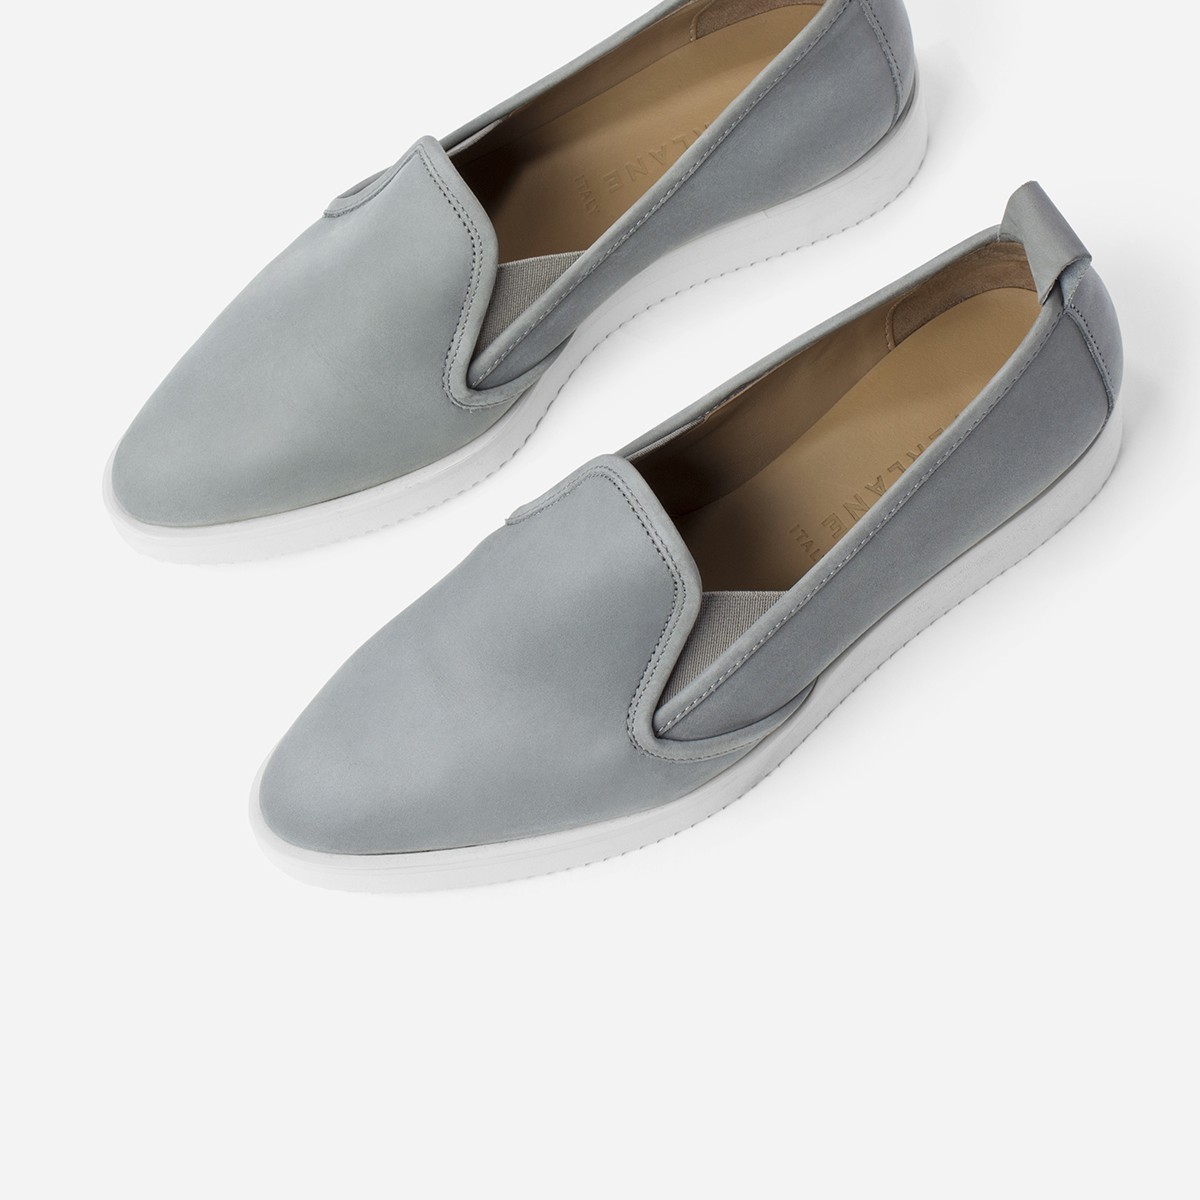 A Review of Everlane's Street Shoe